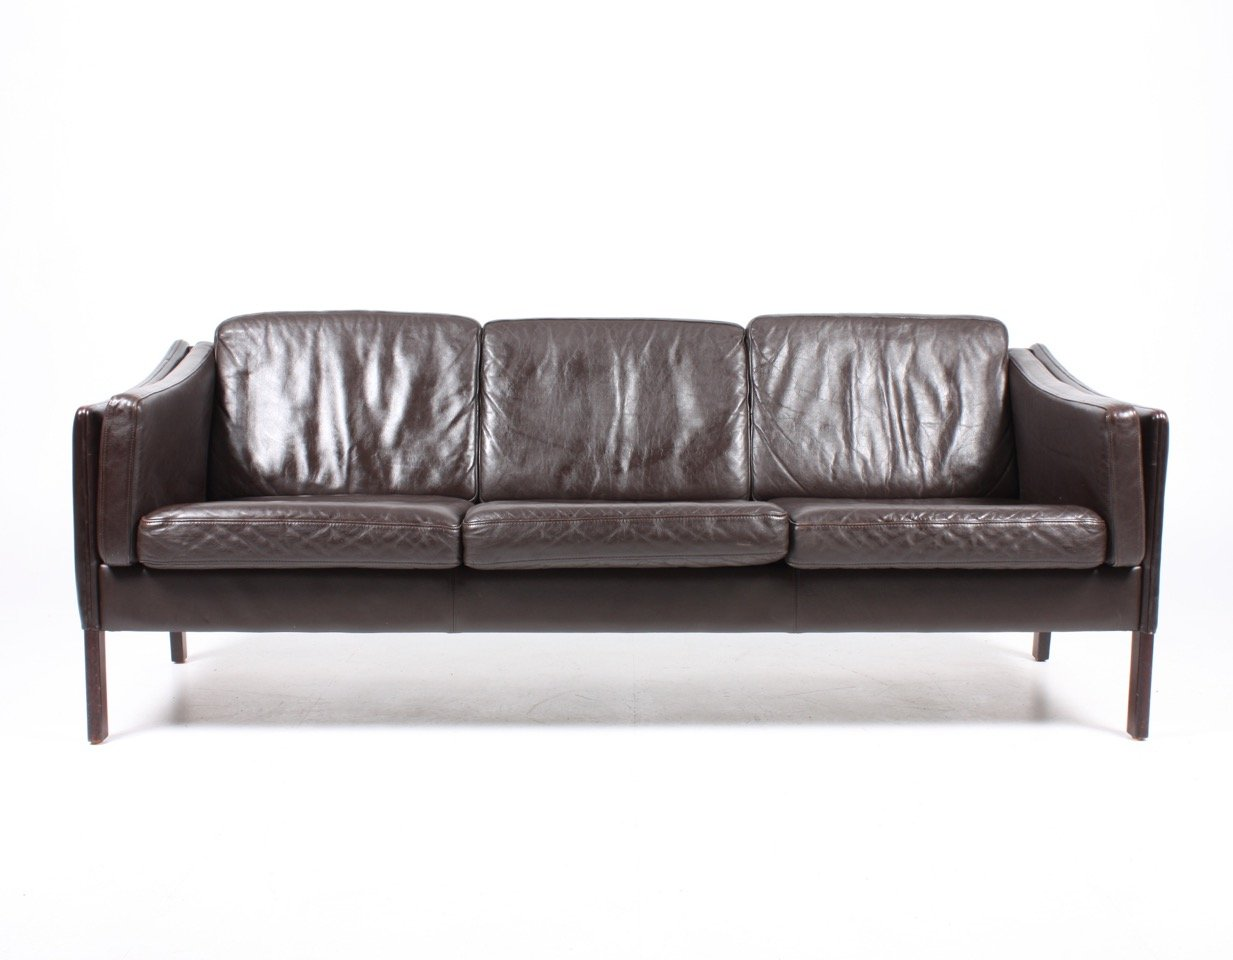 sofa by mogens hansen 1980s bei pamono kaufen. Black Bedroom Furniture Sets. Home Design Ideas